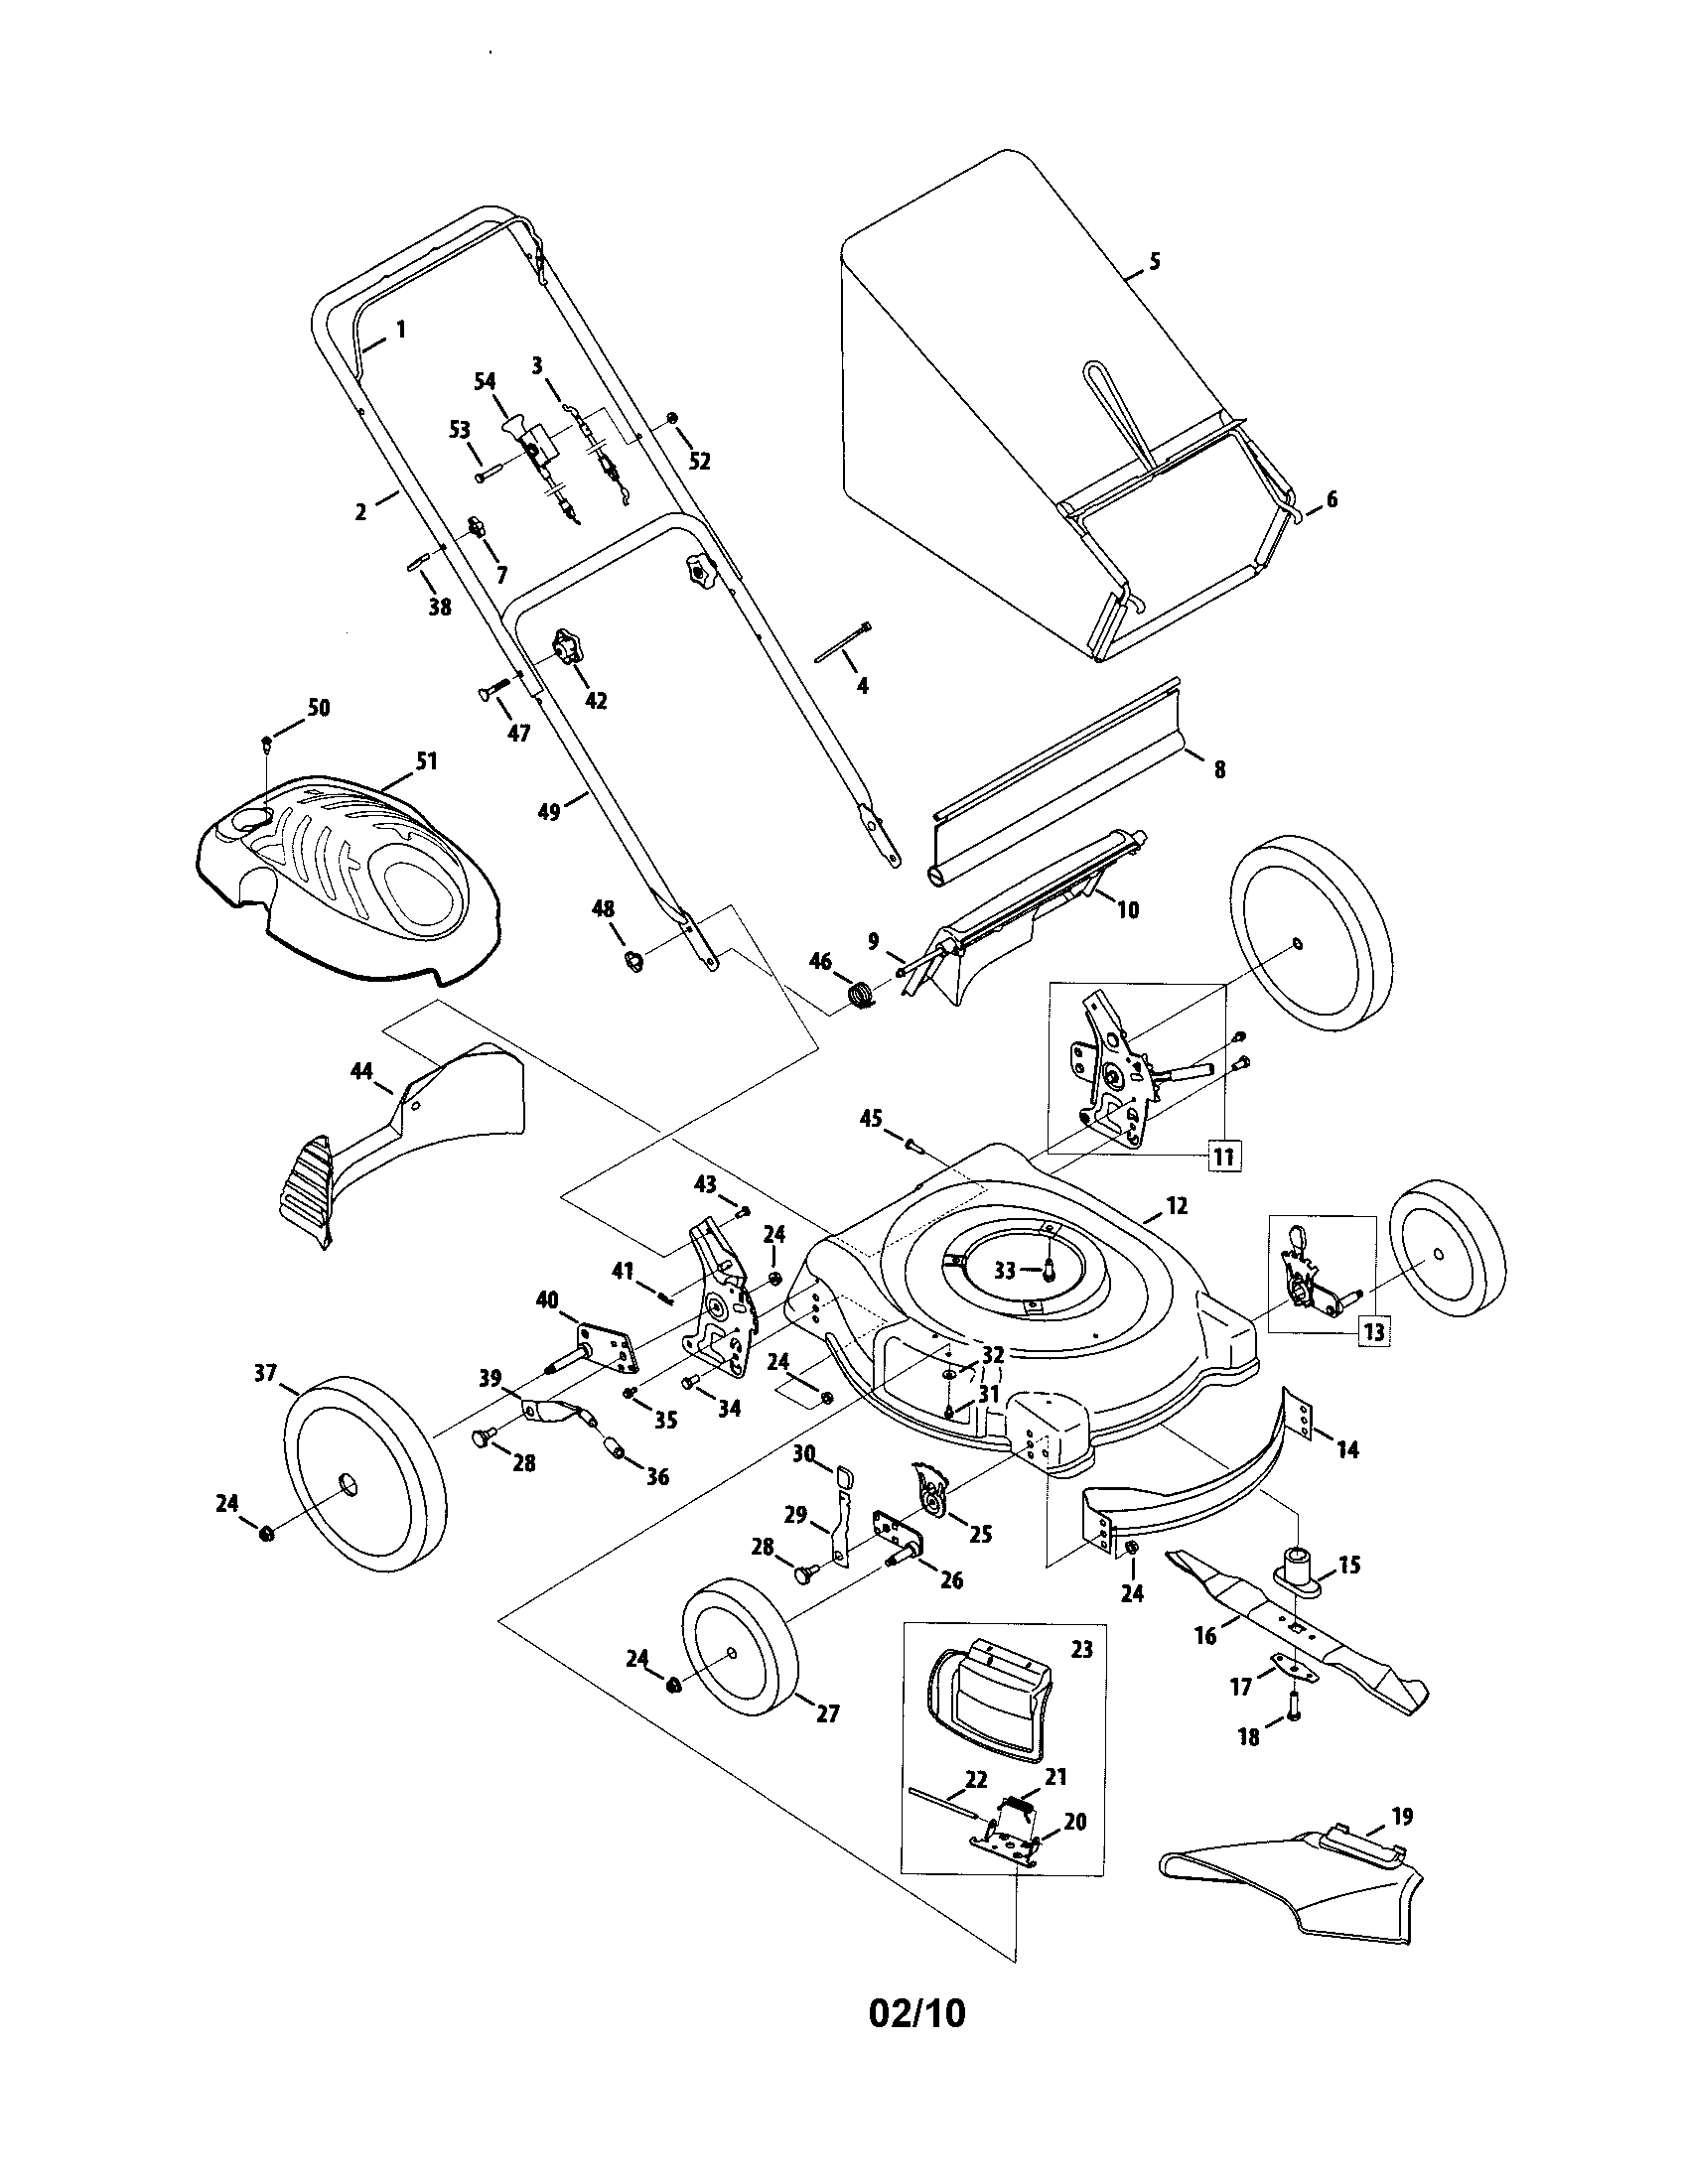 medium resolution of yardman lawn tractor wiring diagram